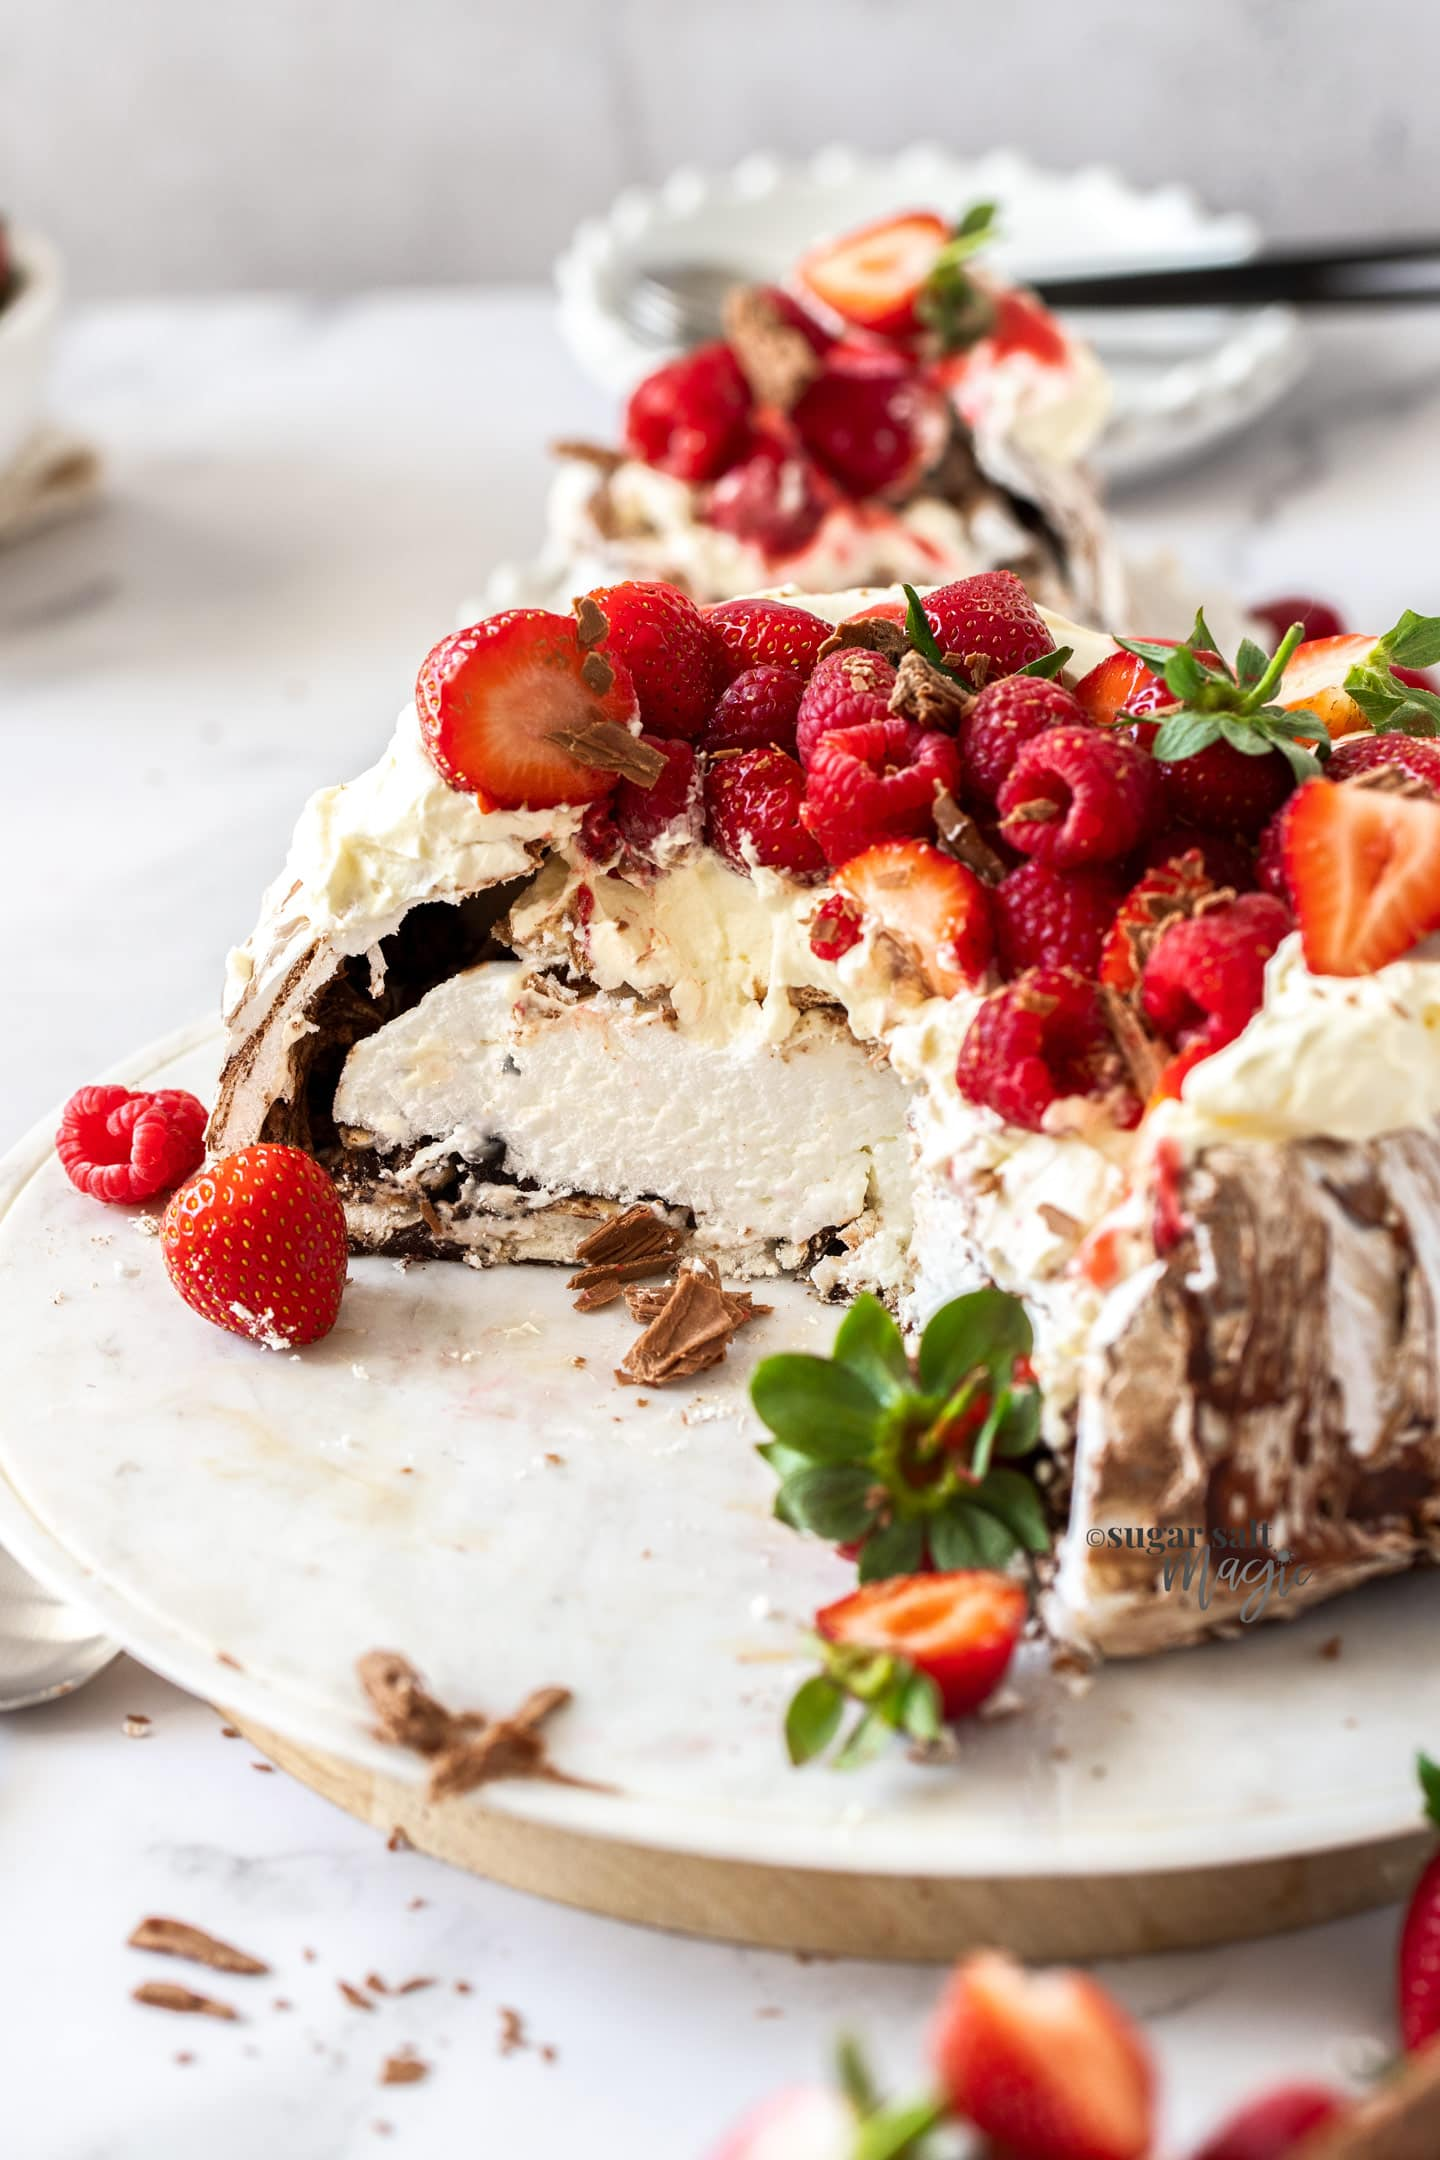 A chocolate pavlova topped with cream and berries that has been cut open